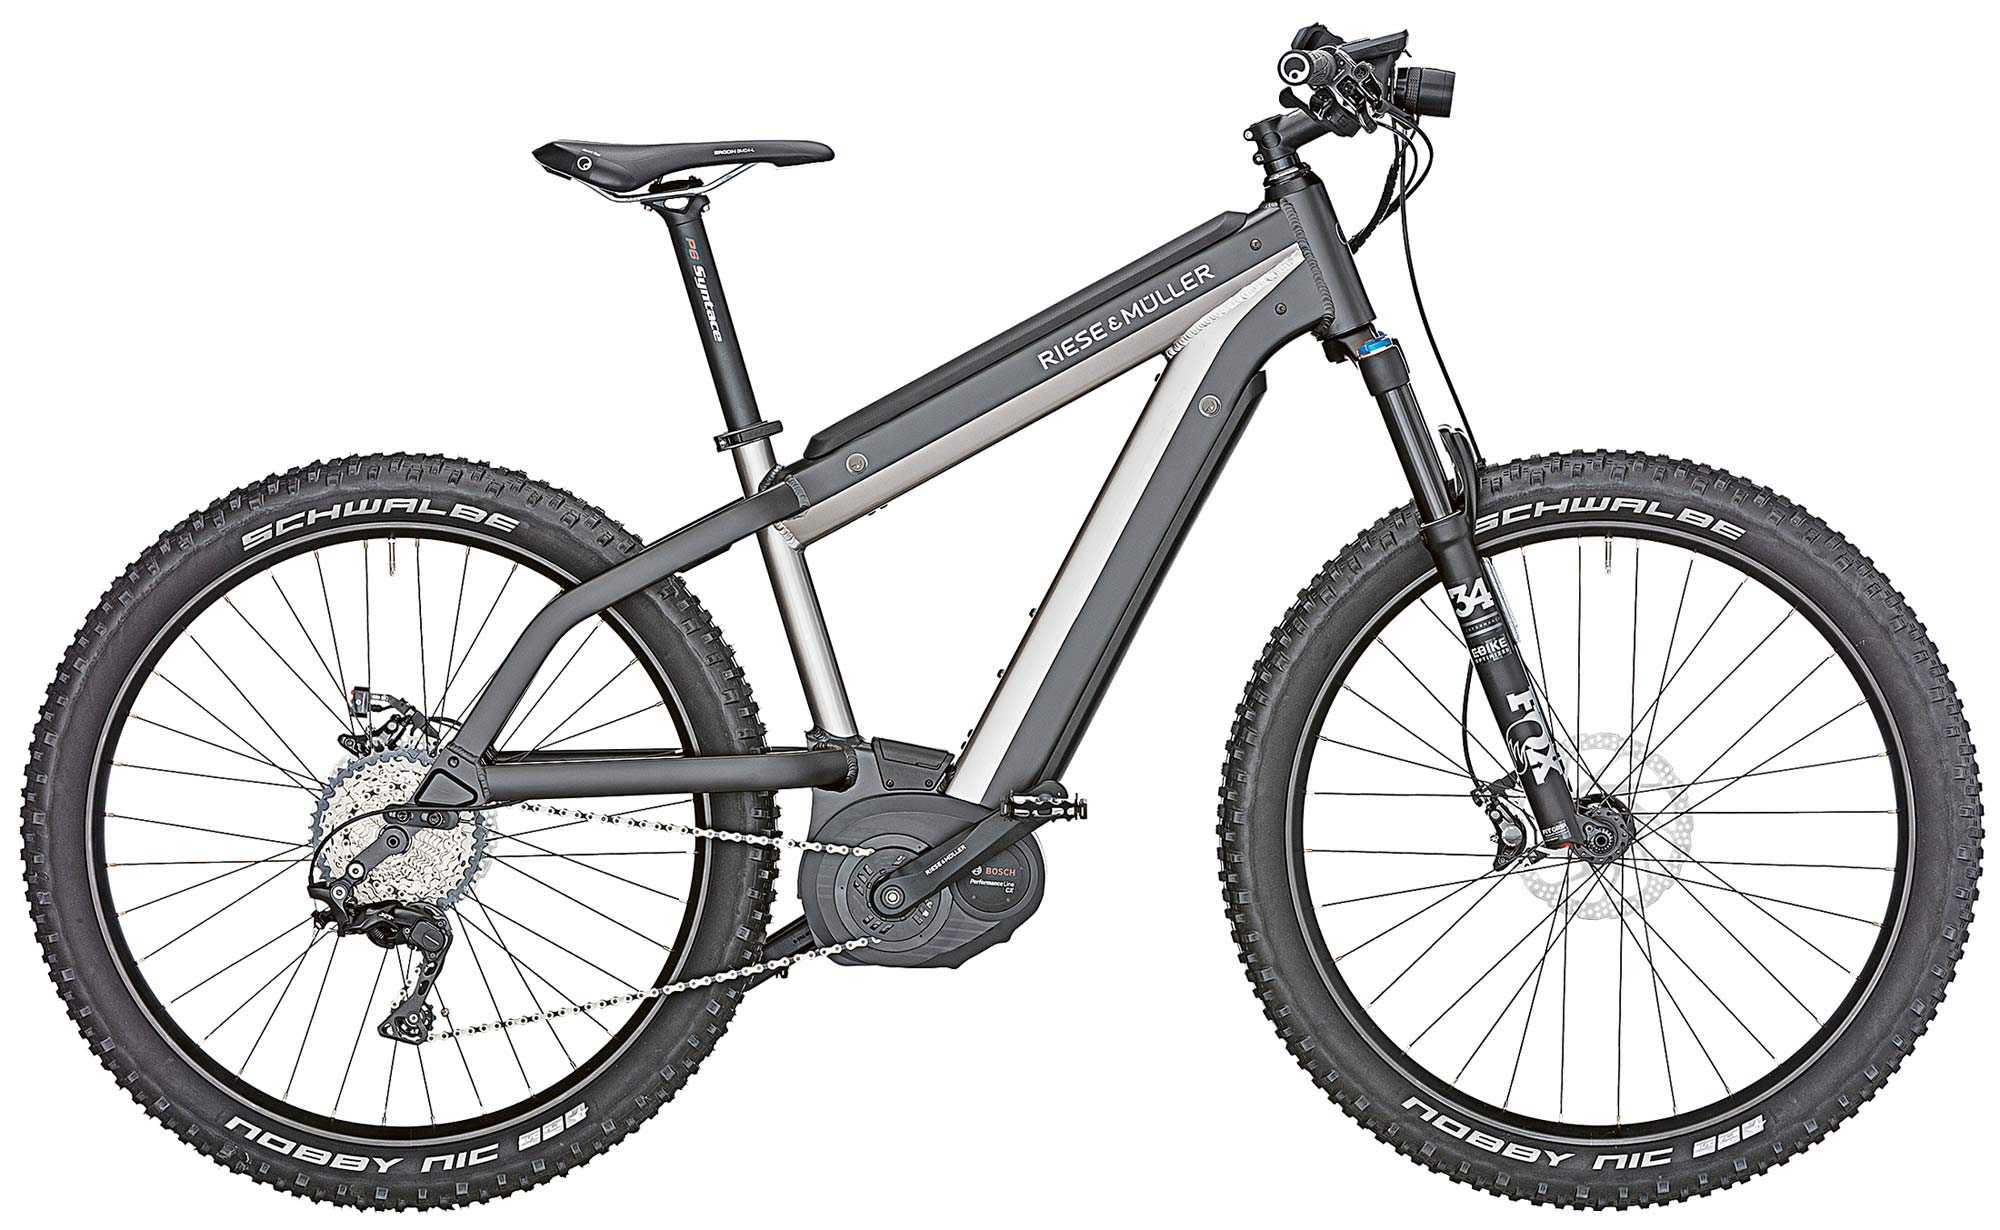 06b46eaff18 The Supercharger is an all-new e-bike/eMTB design for R&M. Based off the  prior Charger, the new bike aims to go even further off-road.